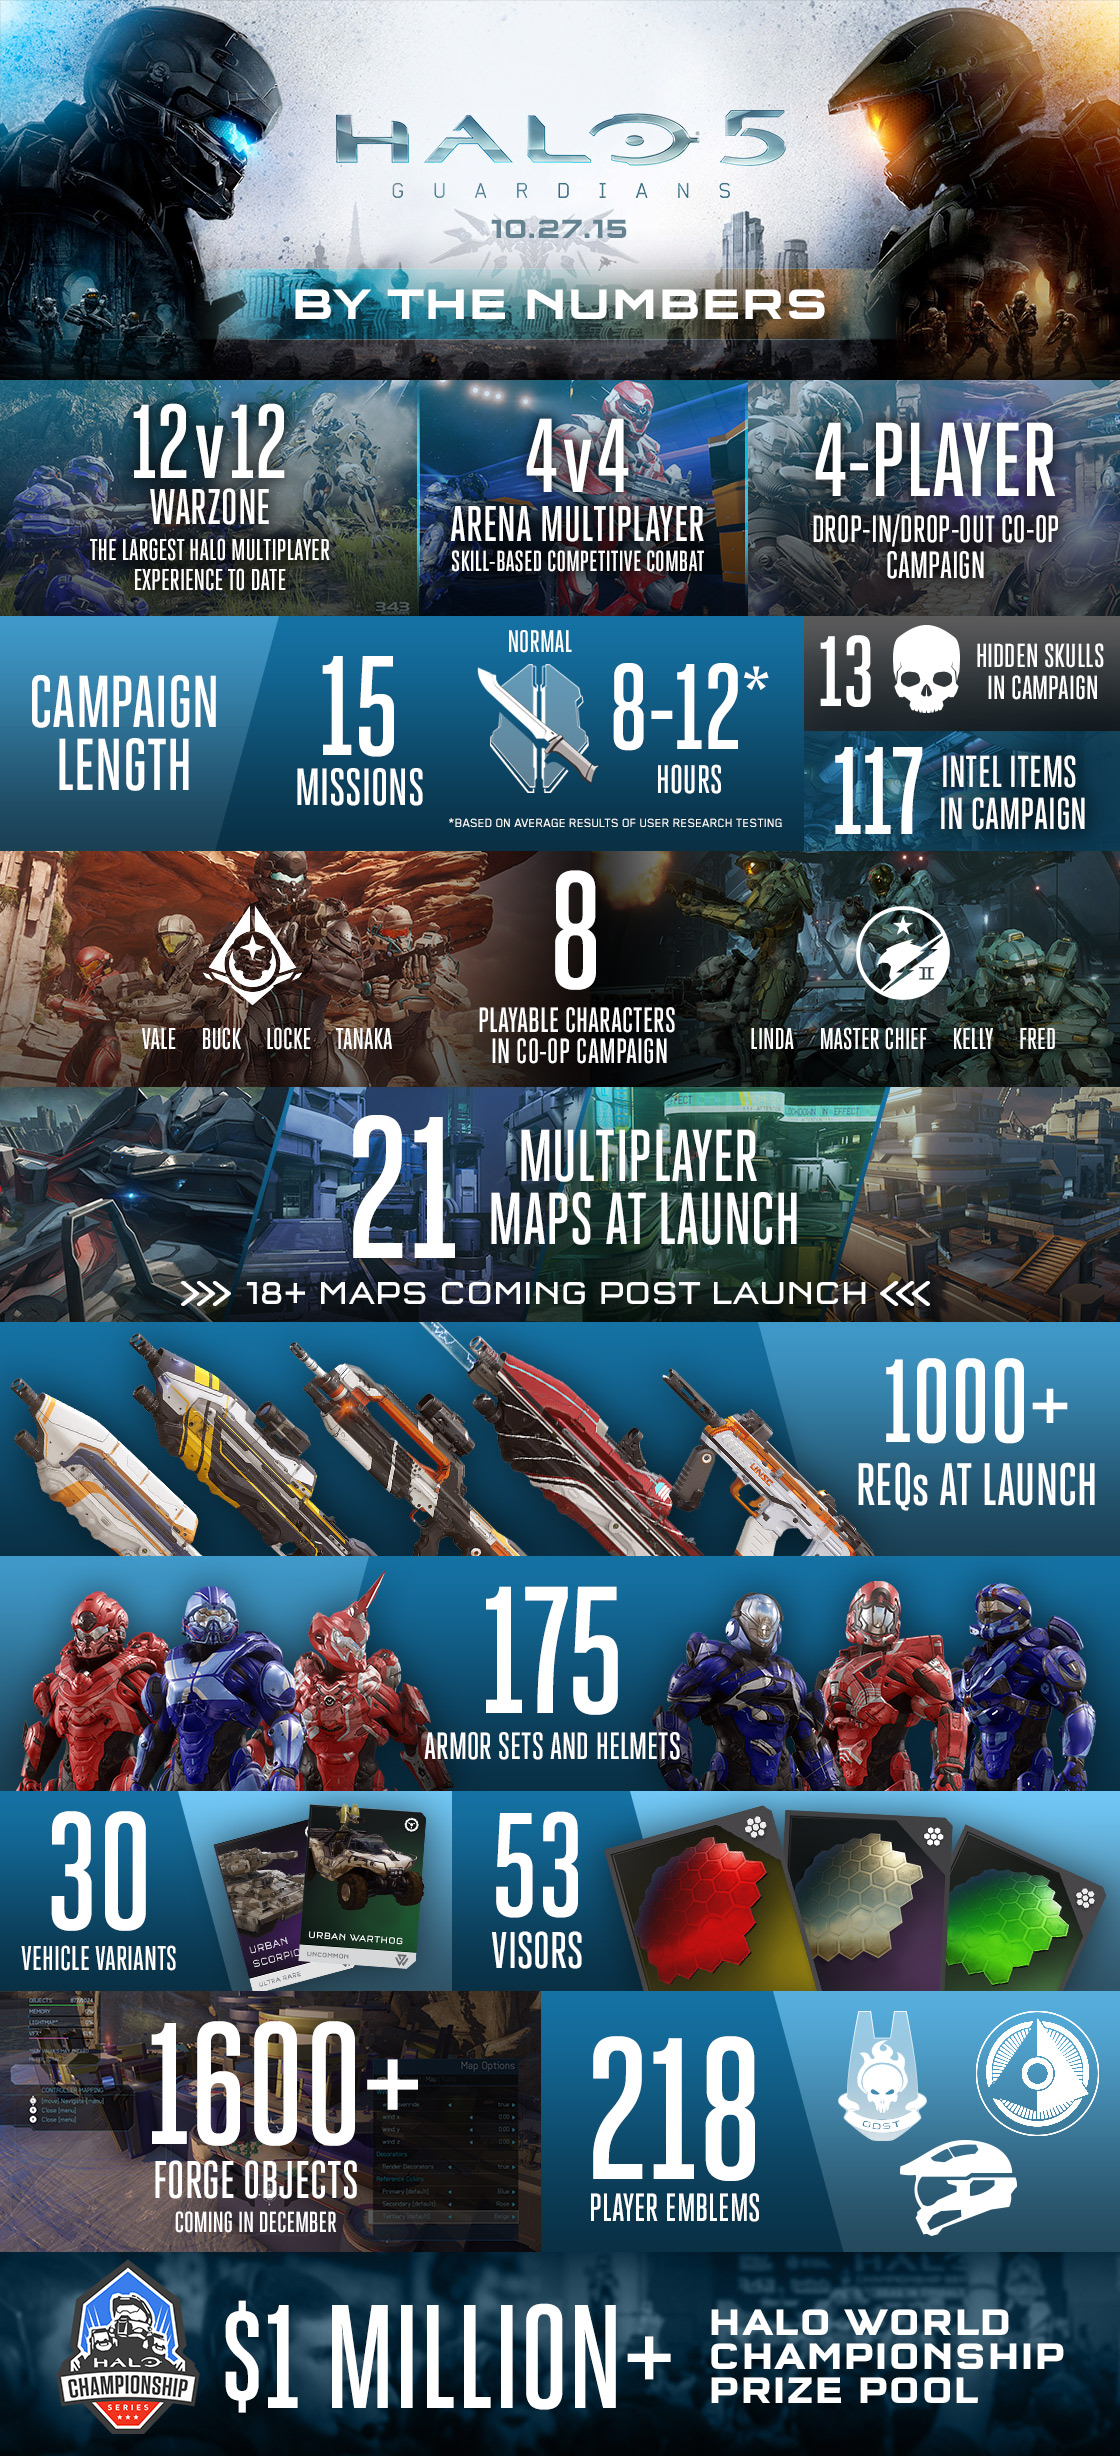 10-5_h5-infographic